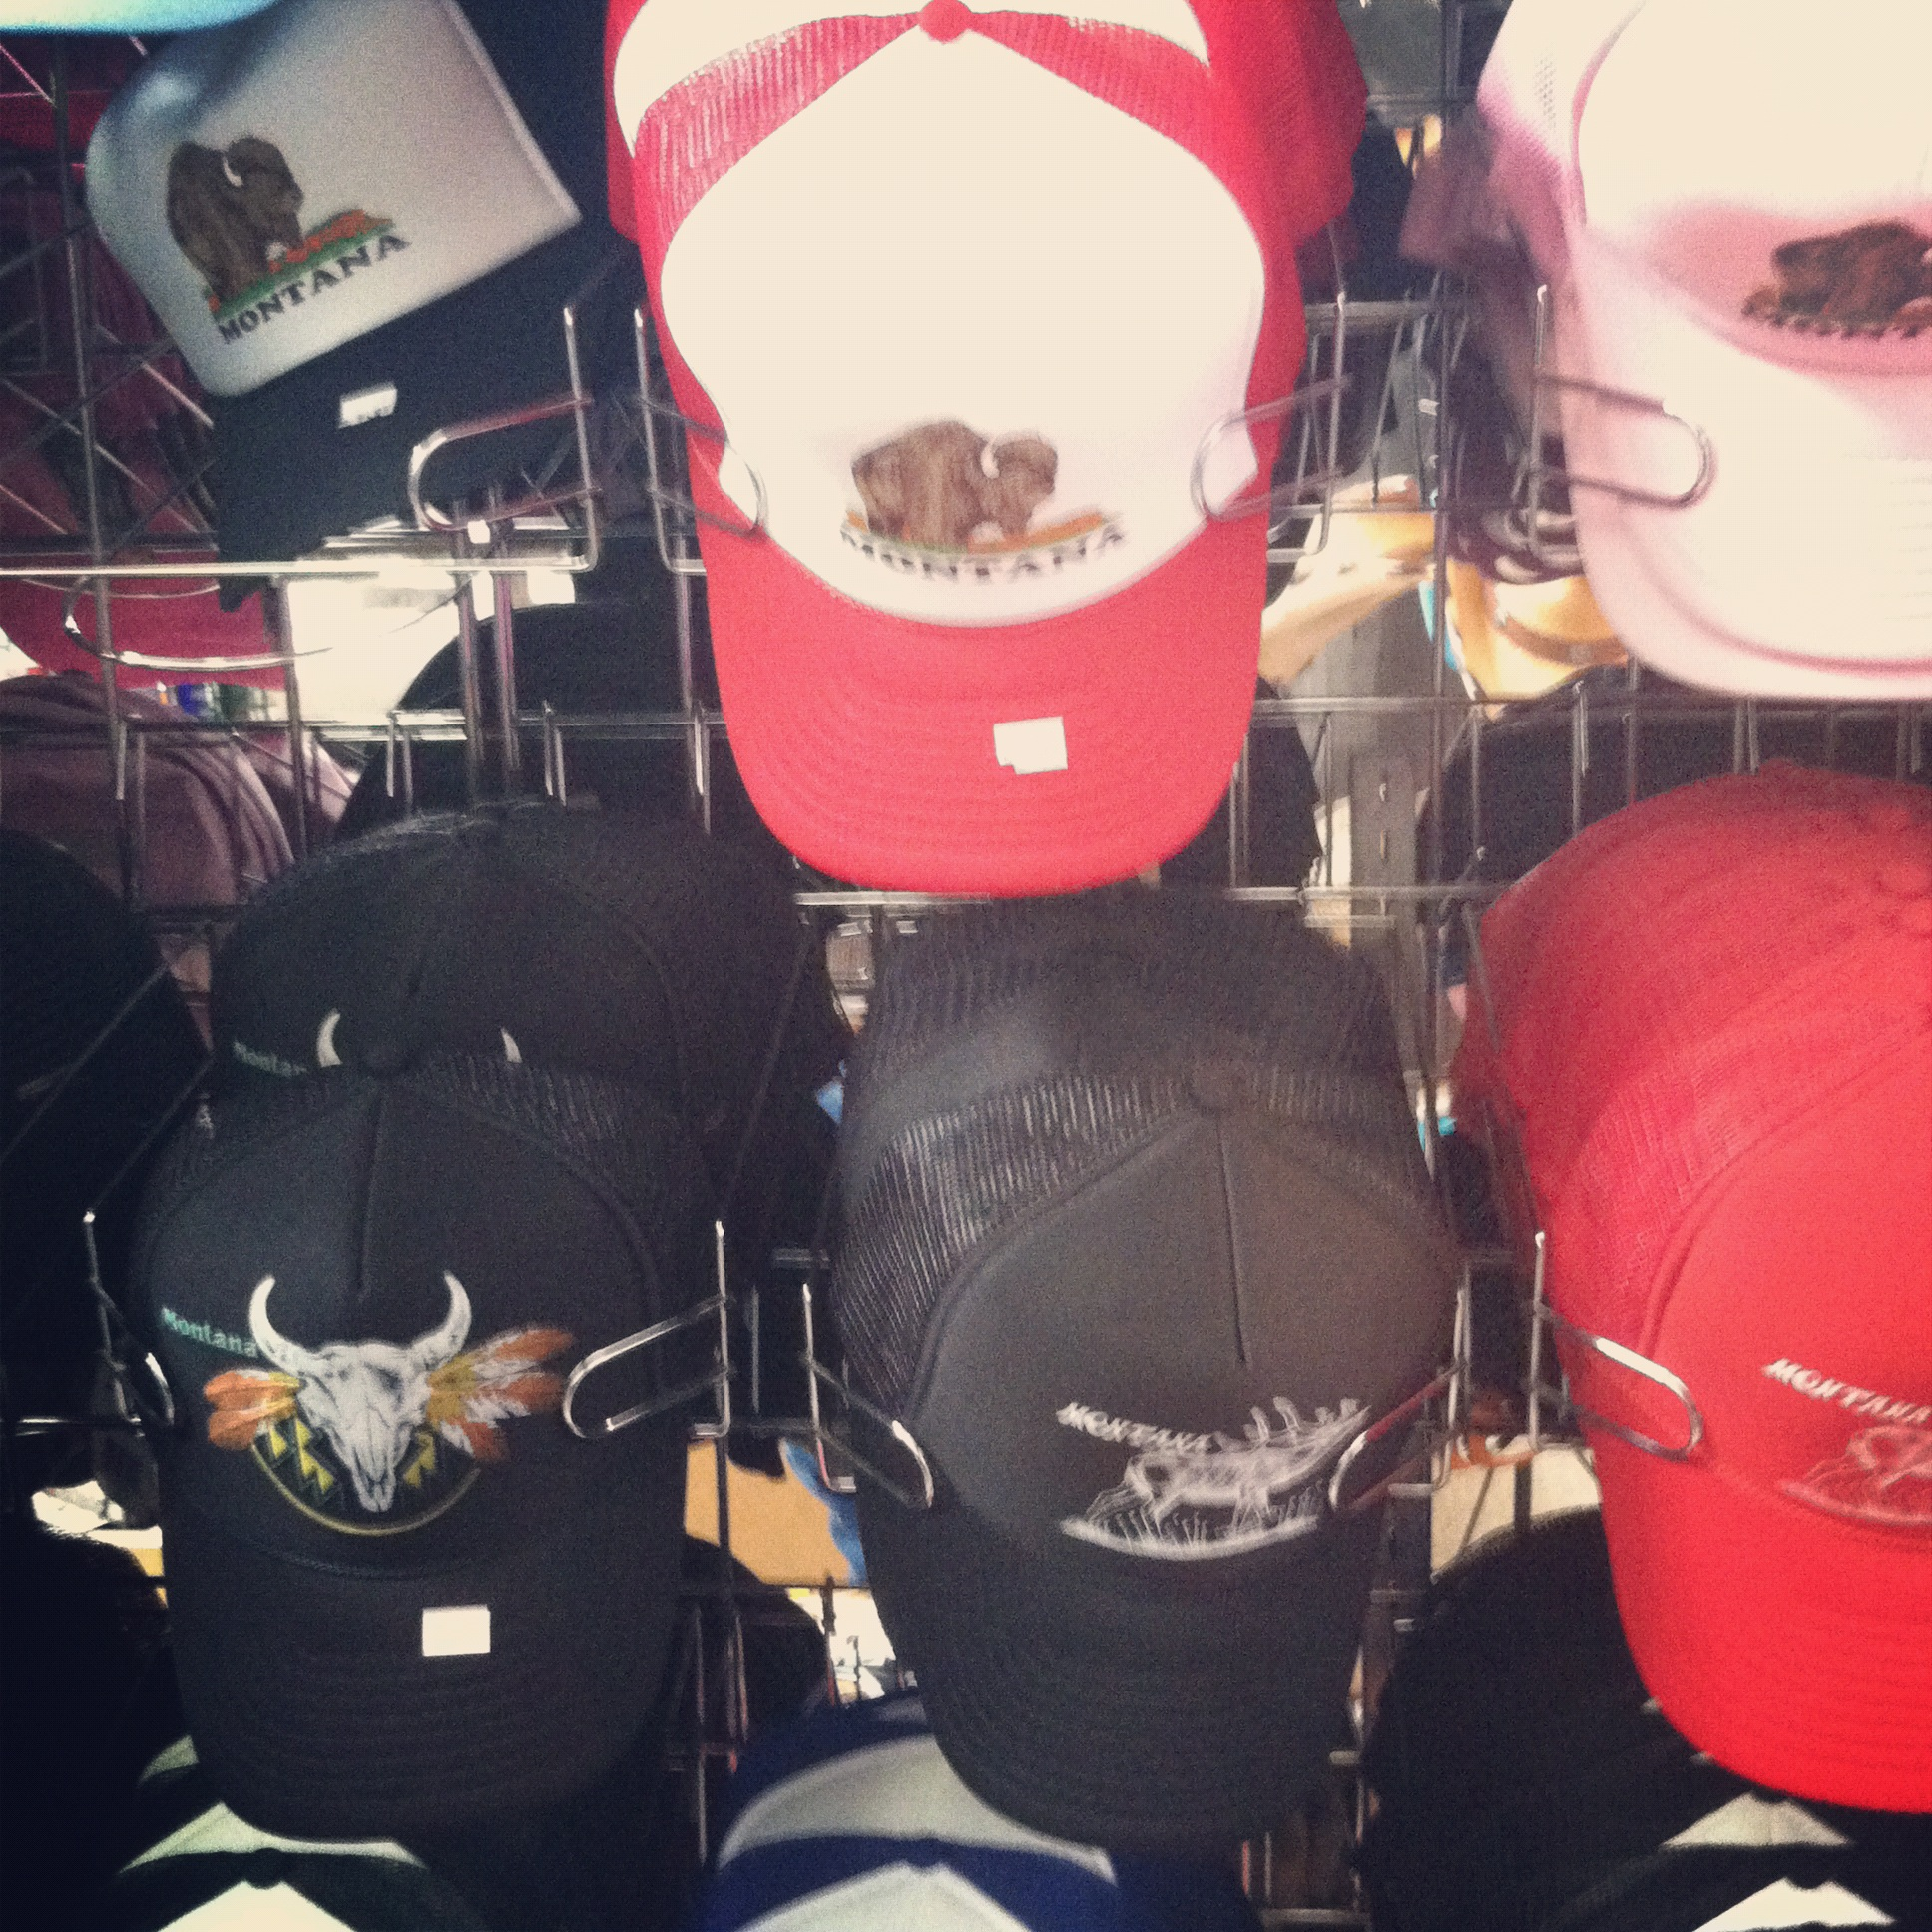 A selection of the hats they offer. I actually really dig some of these....I even bought one!